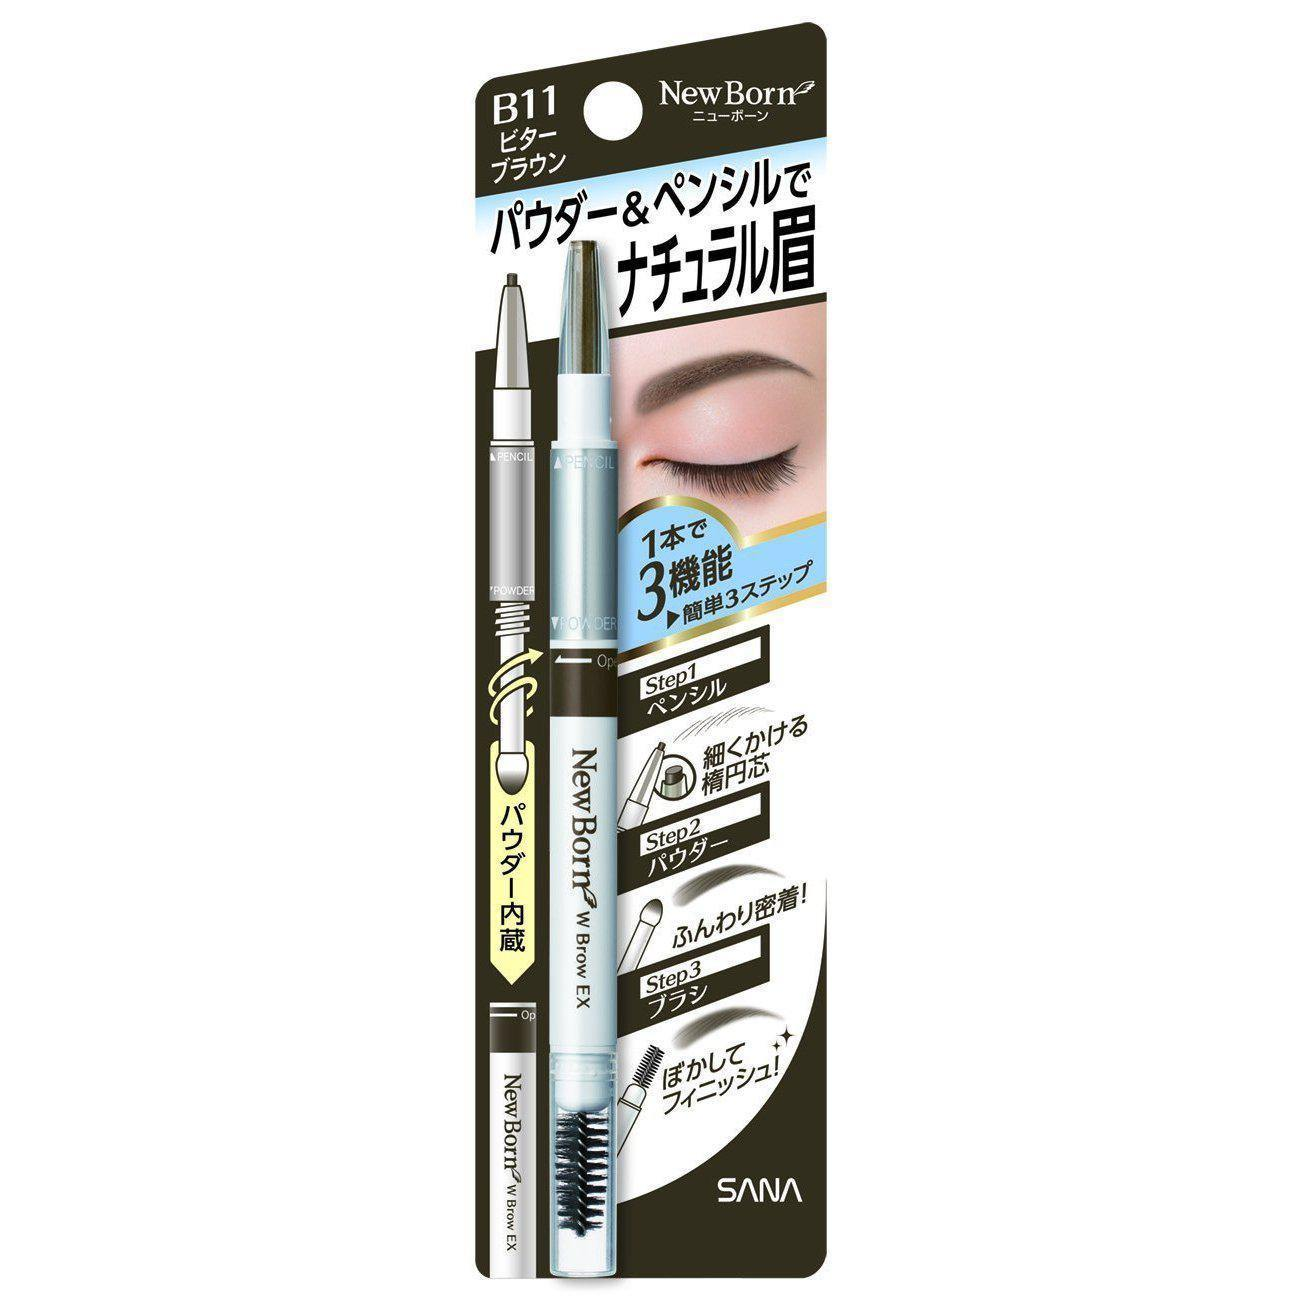 Sana 3 in 1 New Eyebrow Powder and Pencil B11 Bitter Brown Color 1 Piece